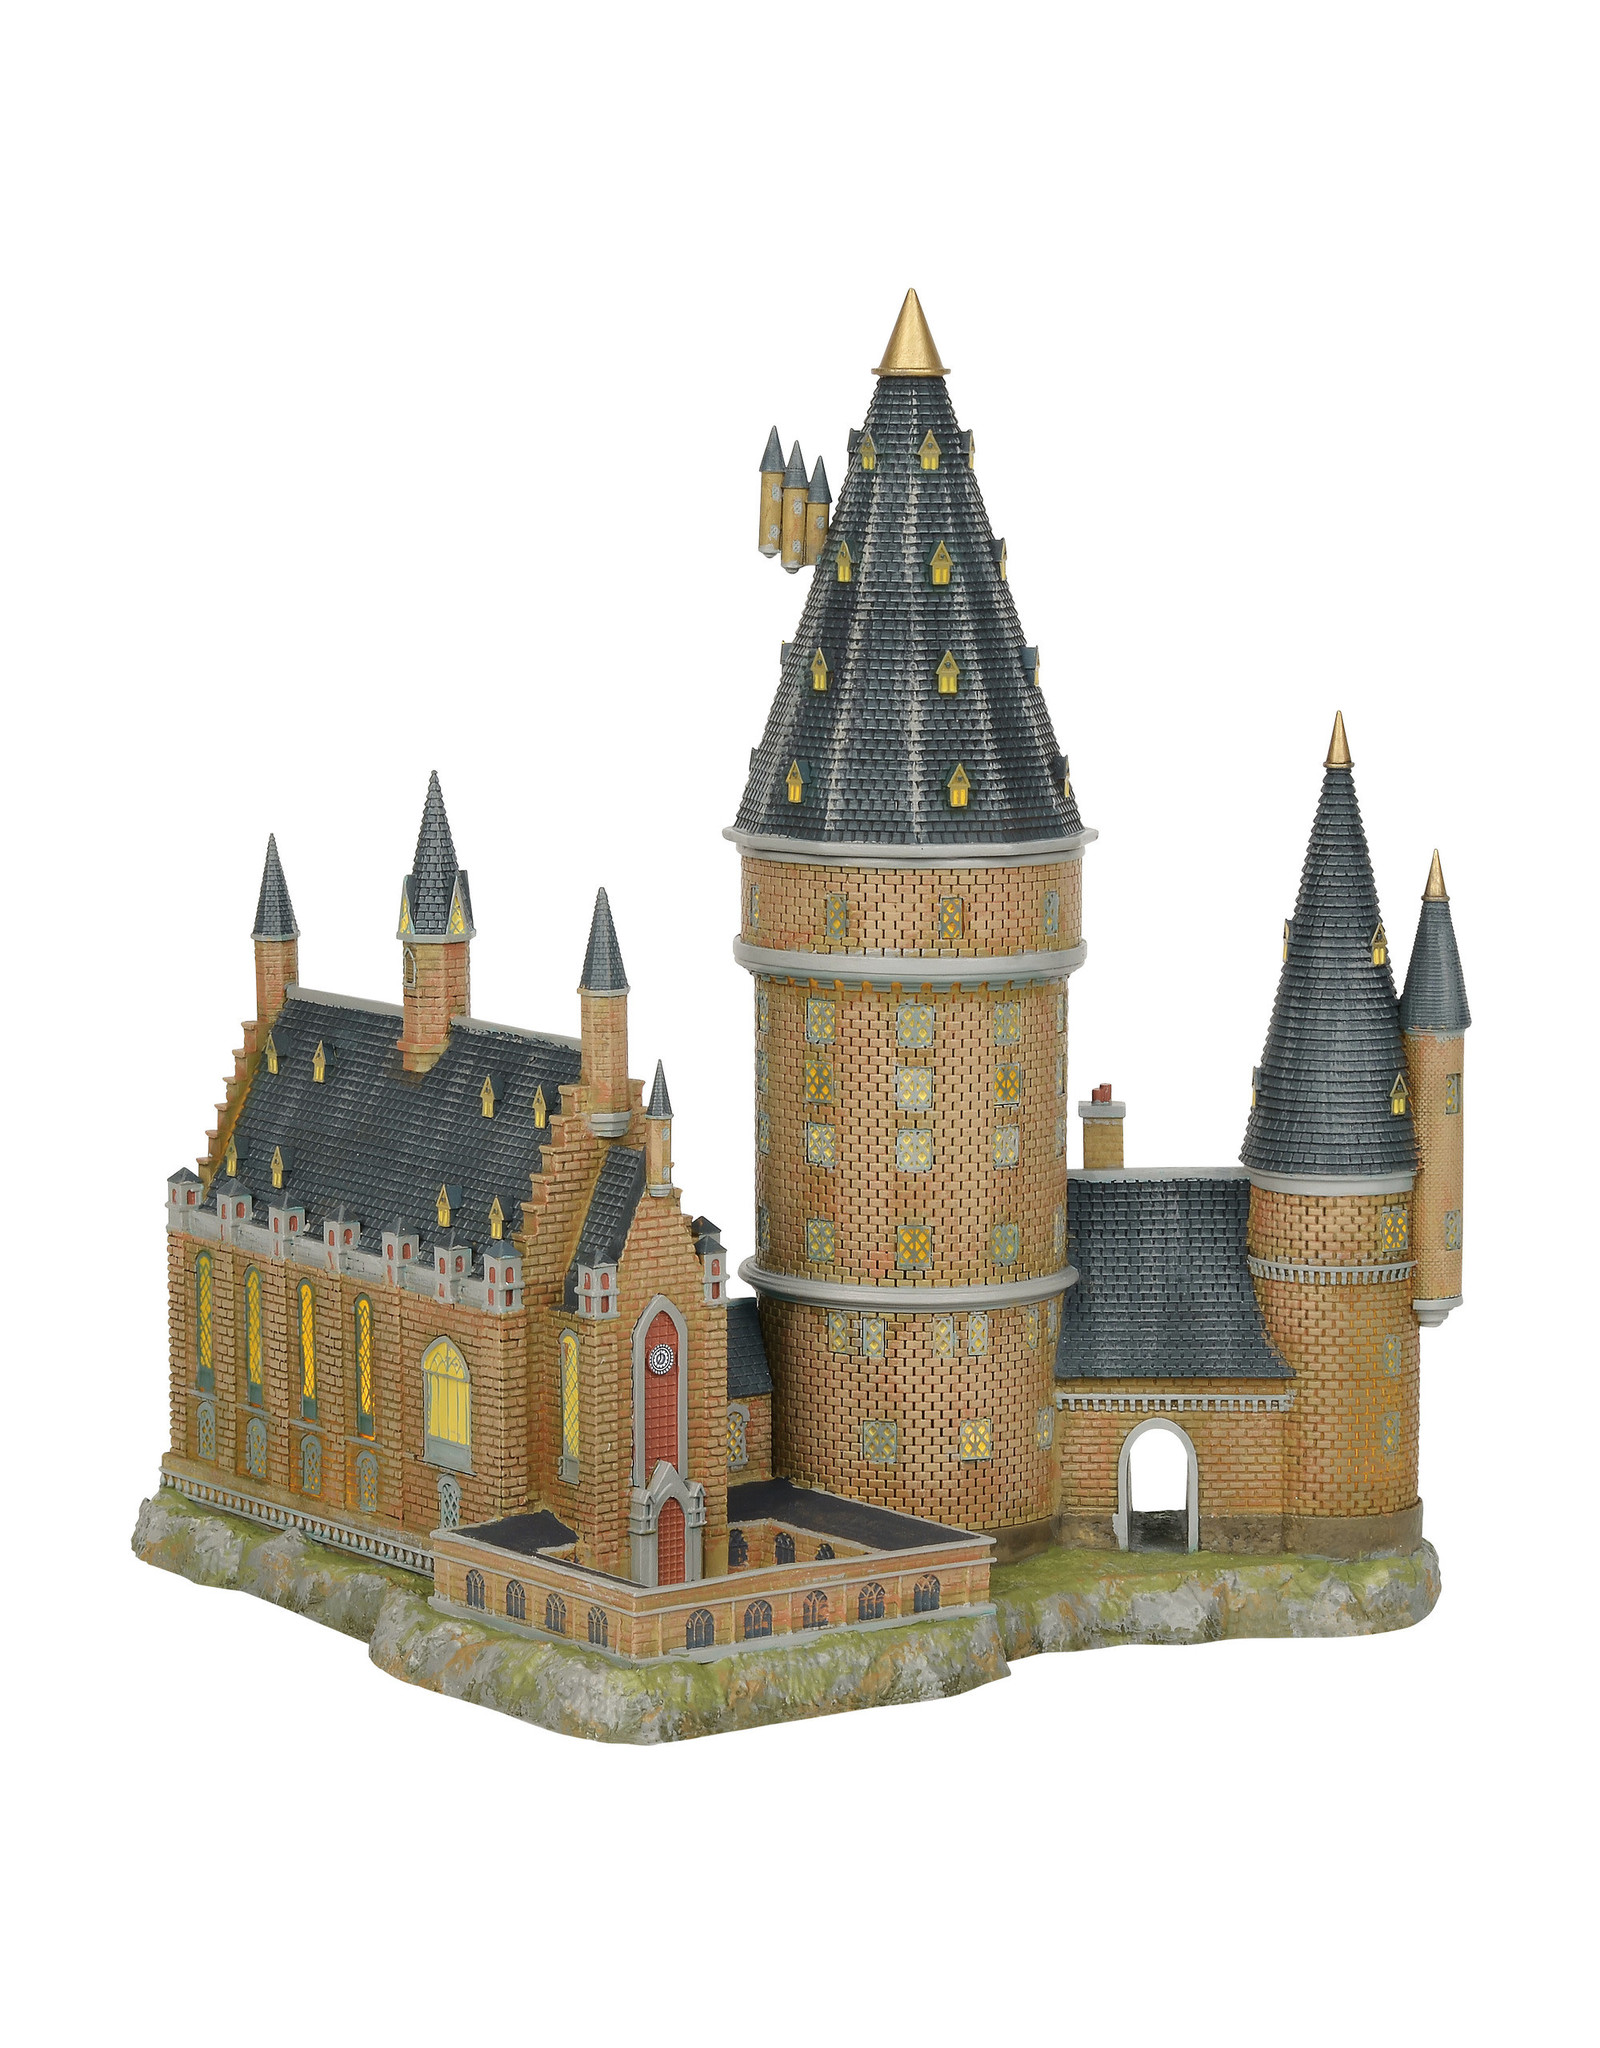 Department 56 Hogwards Great Hall & Tower